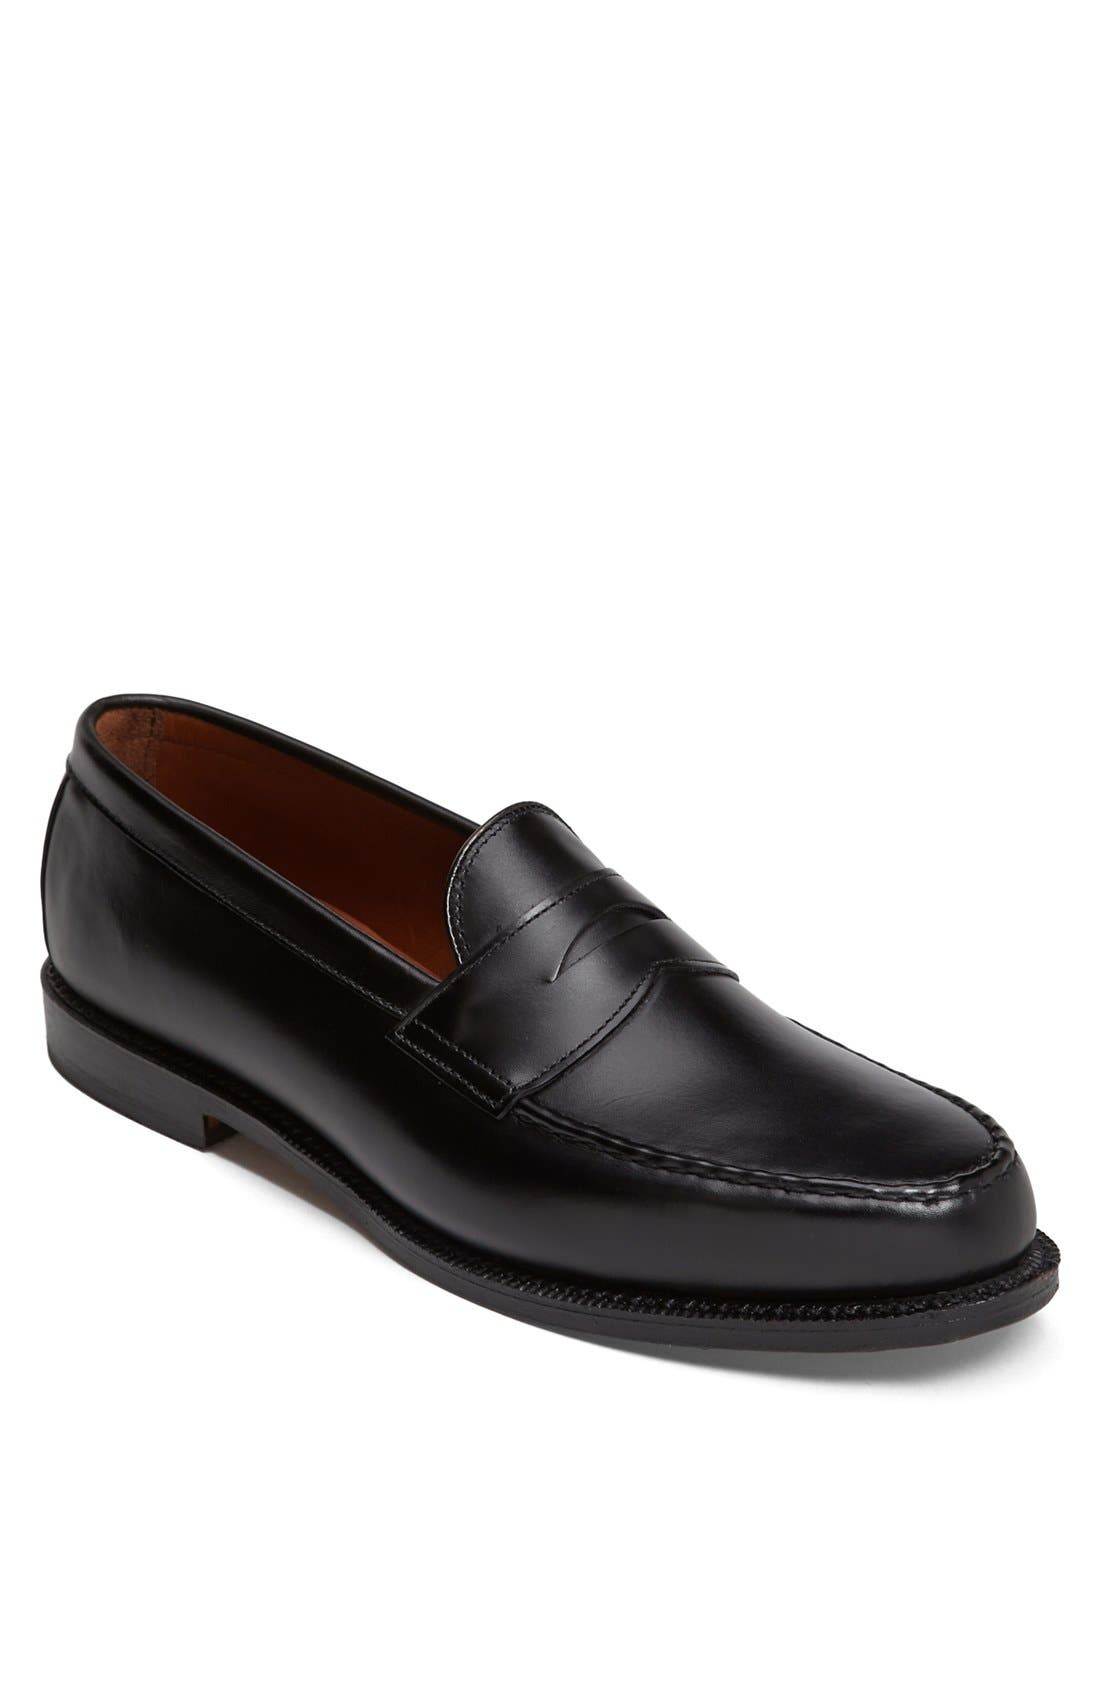 Alternate Image 1 Selected - Allen Edmonds 'Patriot' Penny Loafer (Men)